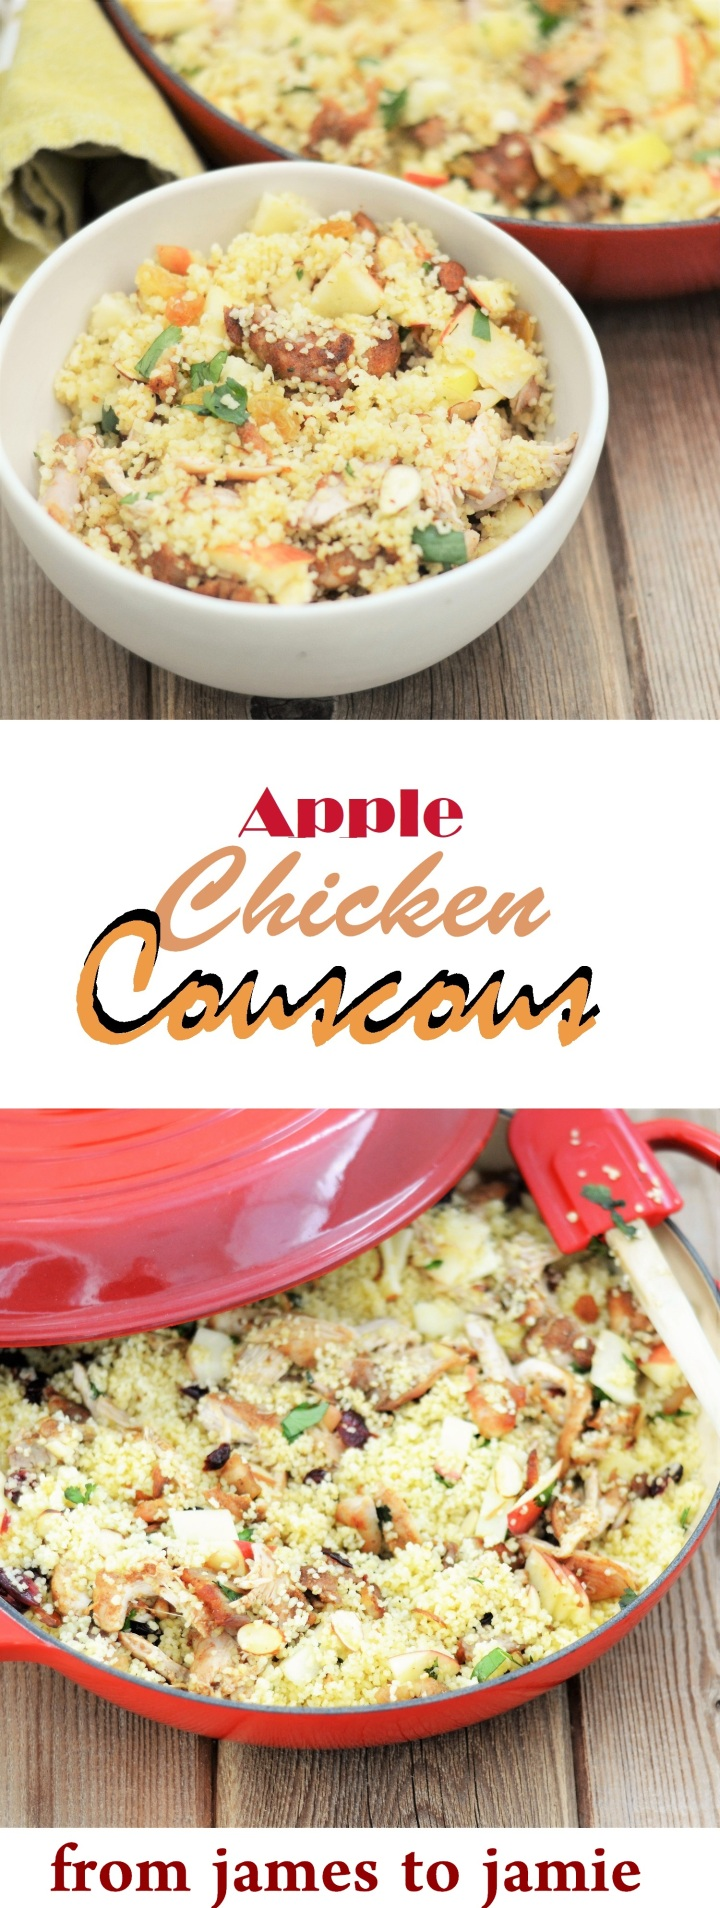 Apple Chicken Couscous